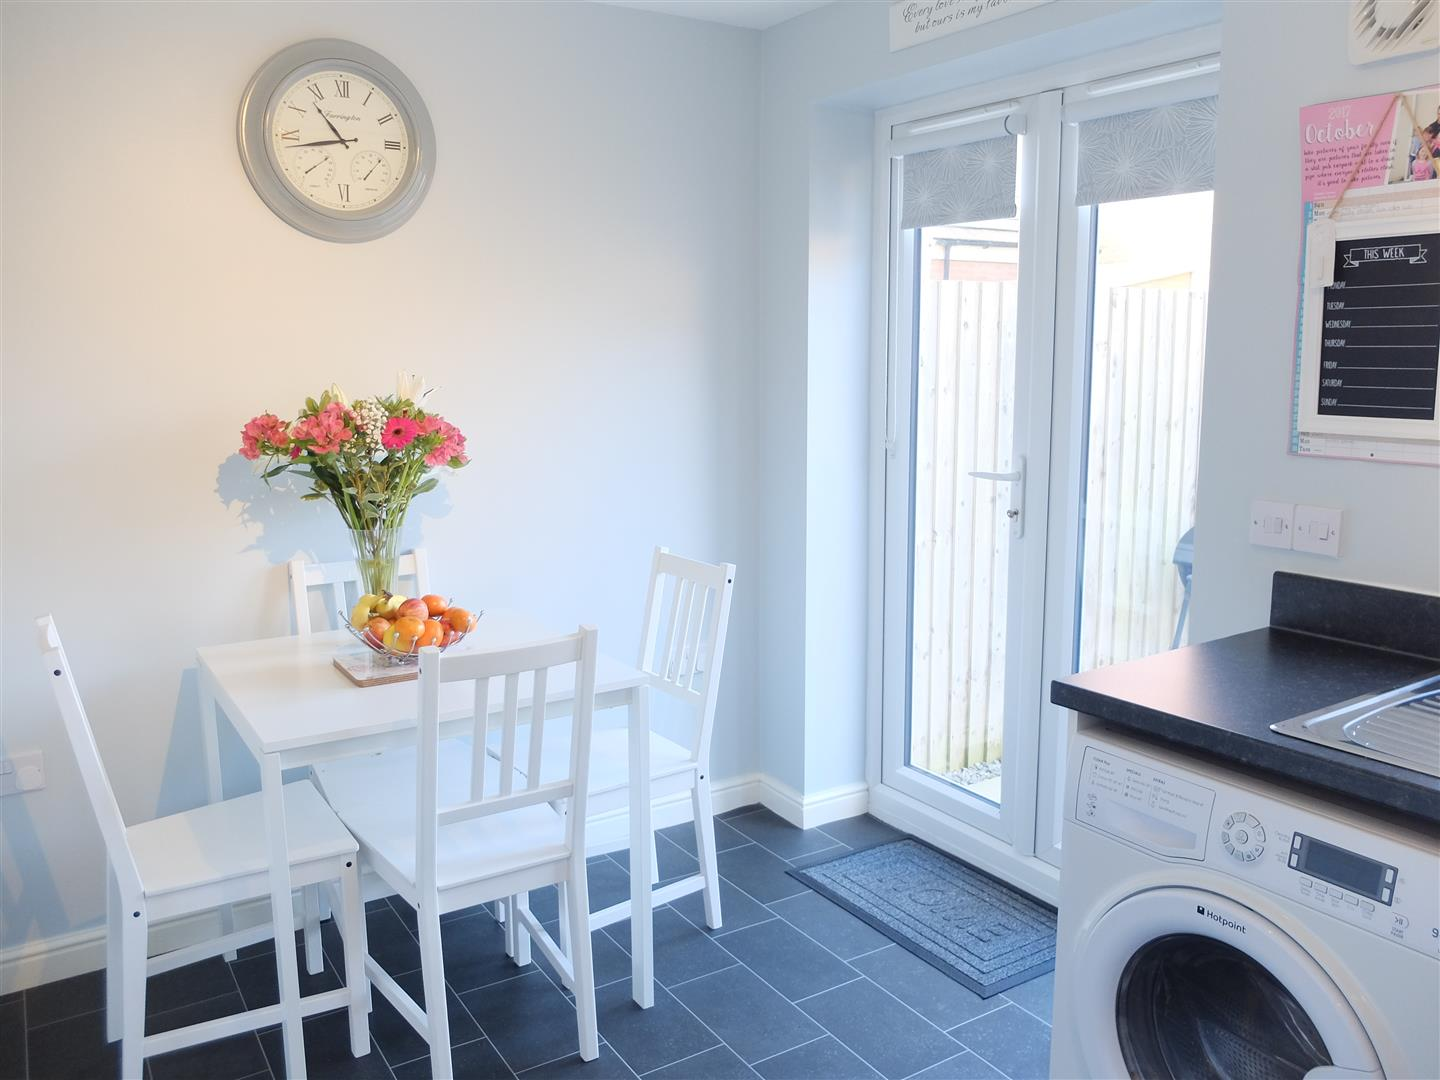 3 Bedrooms House - Mid Terrace For Sale 169 Glaramara Drive Carlisle